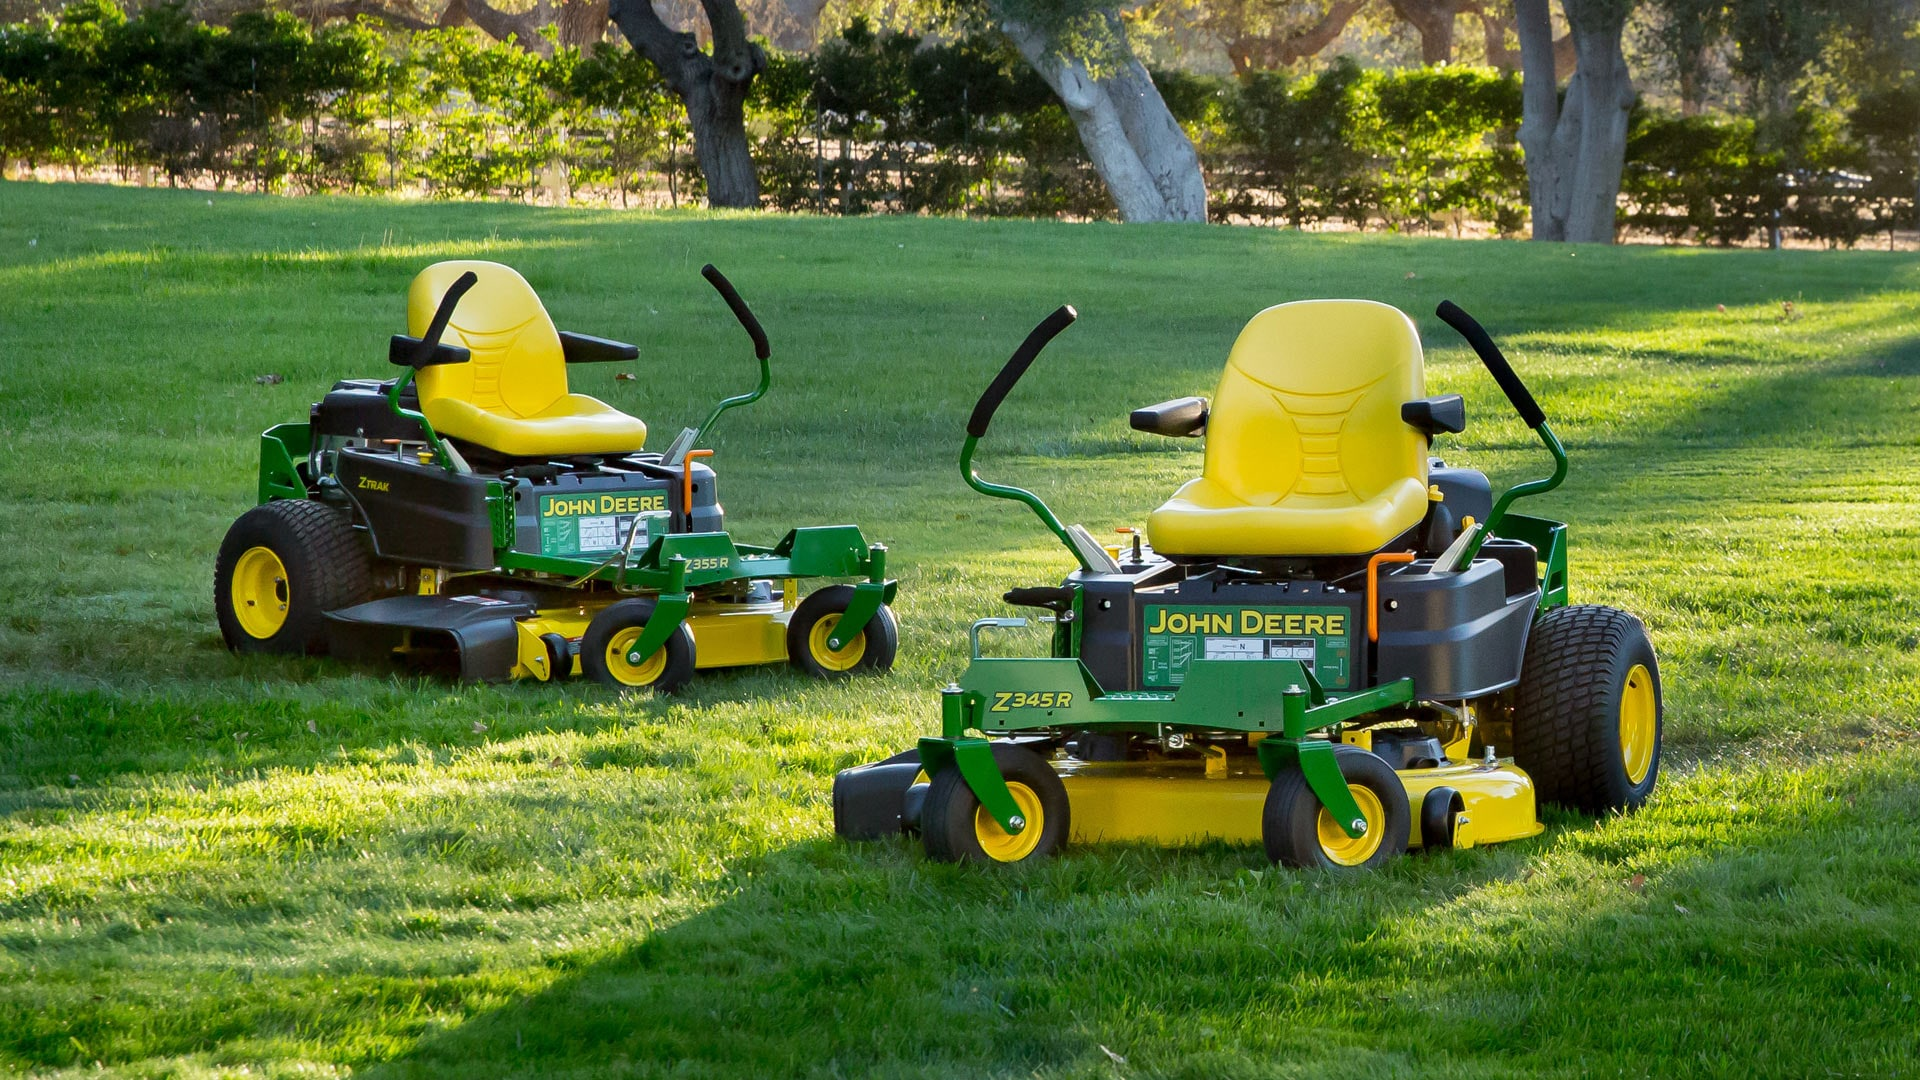 John Deere Zero Turn Mowers : Residential ztrak™ zero turn mowers john deere us